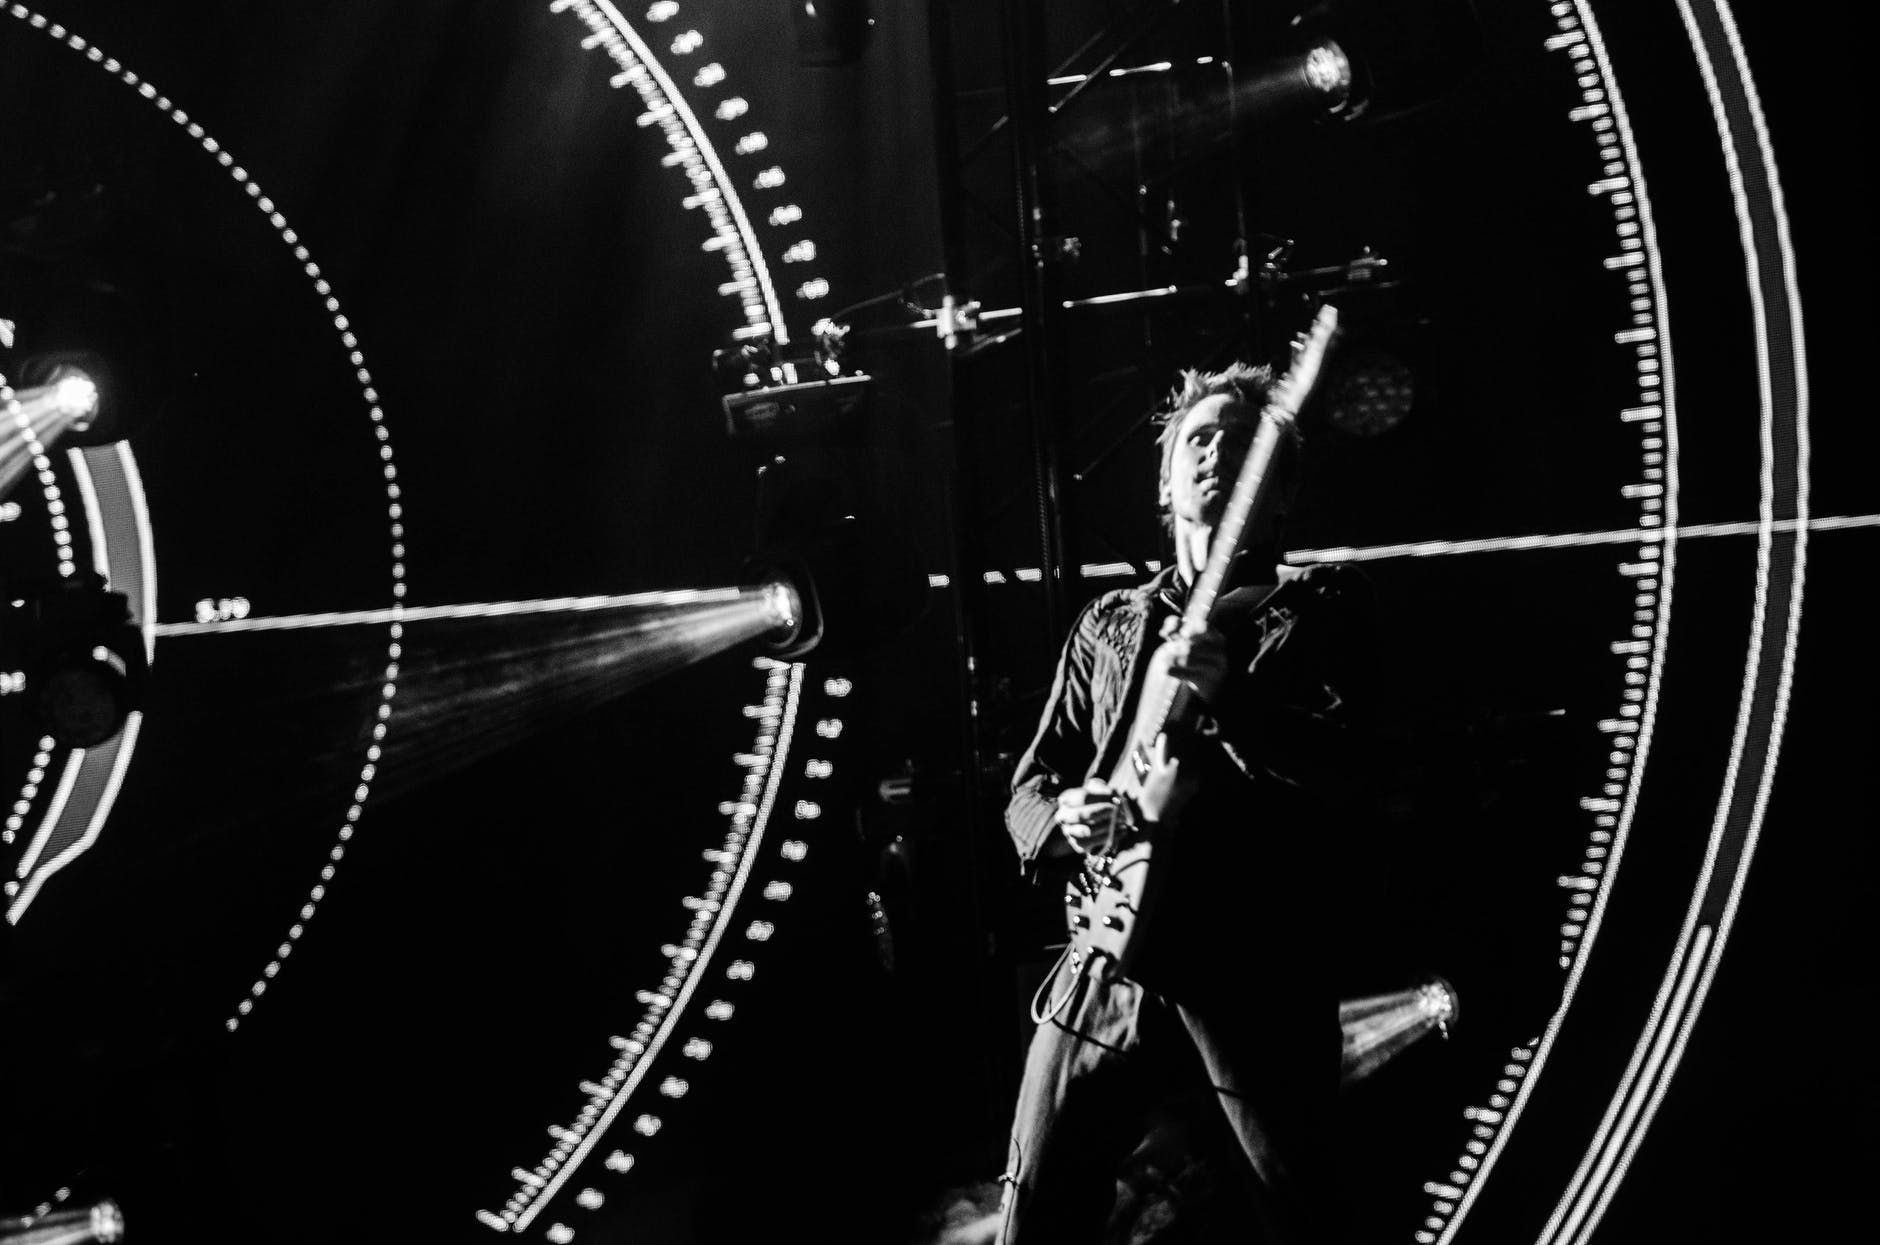 greyscale photography of man playing guitar